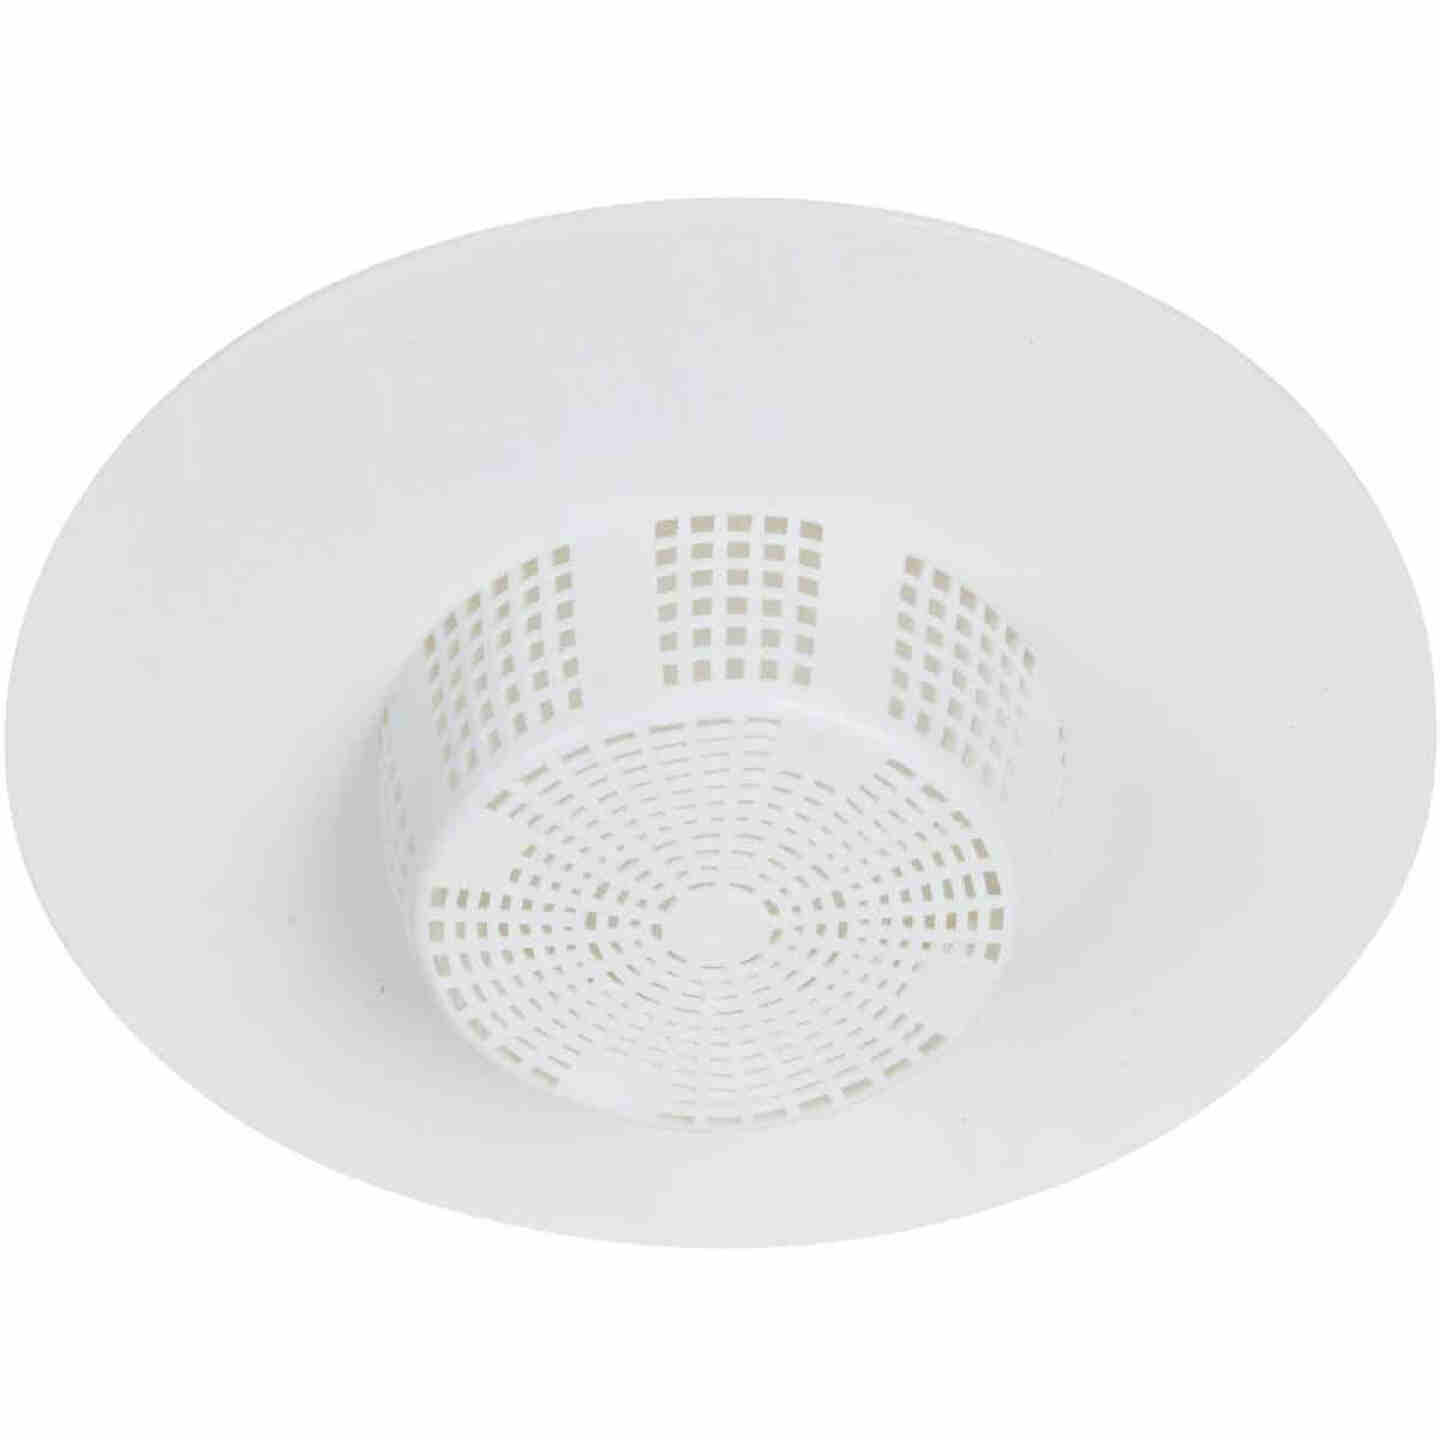 Do it White Hair Snare Sink/Tub Drain Strainer Image 3